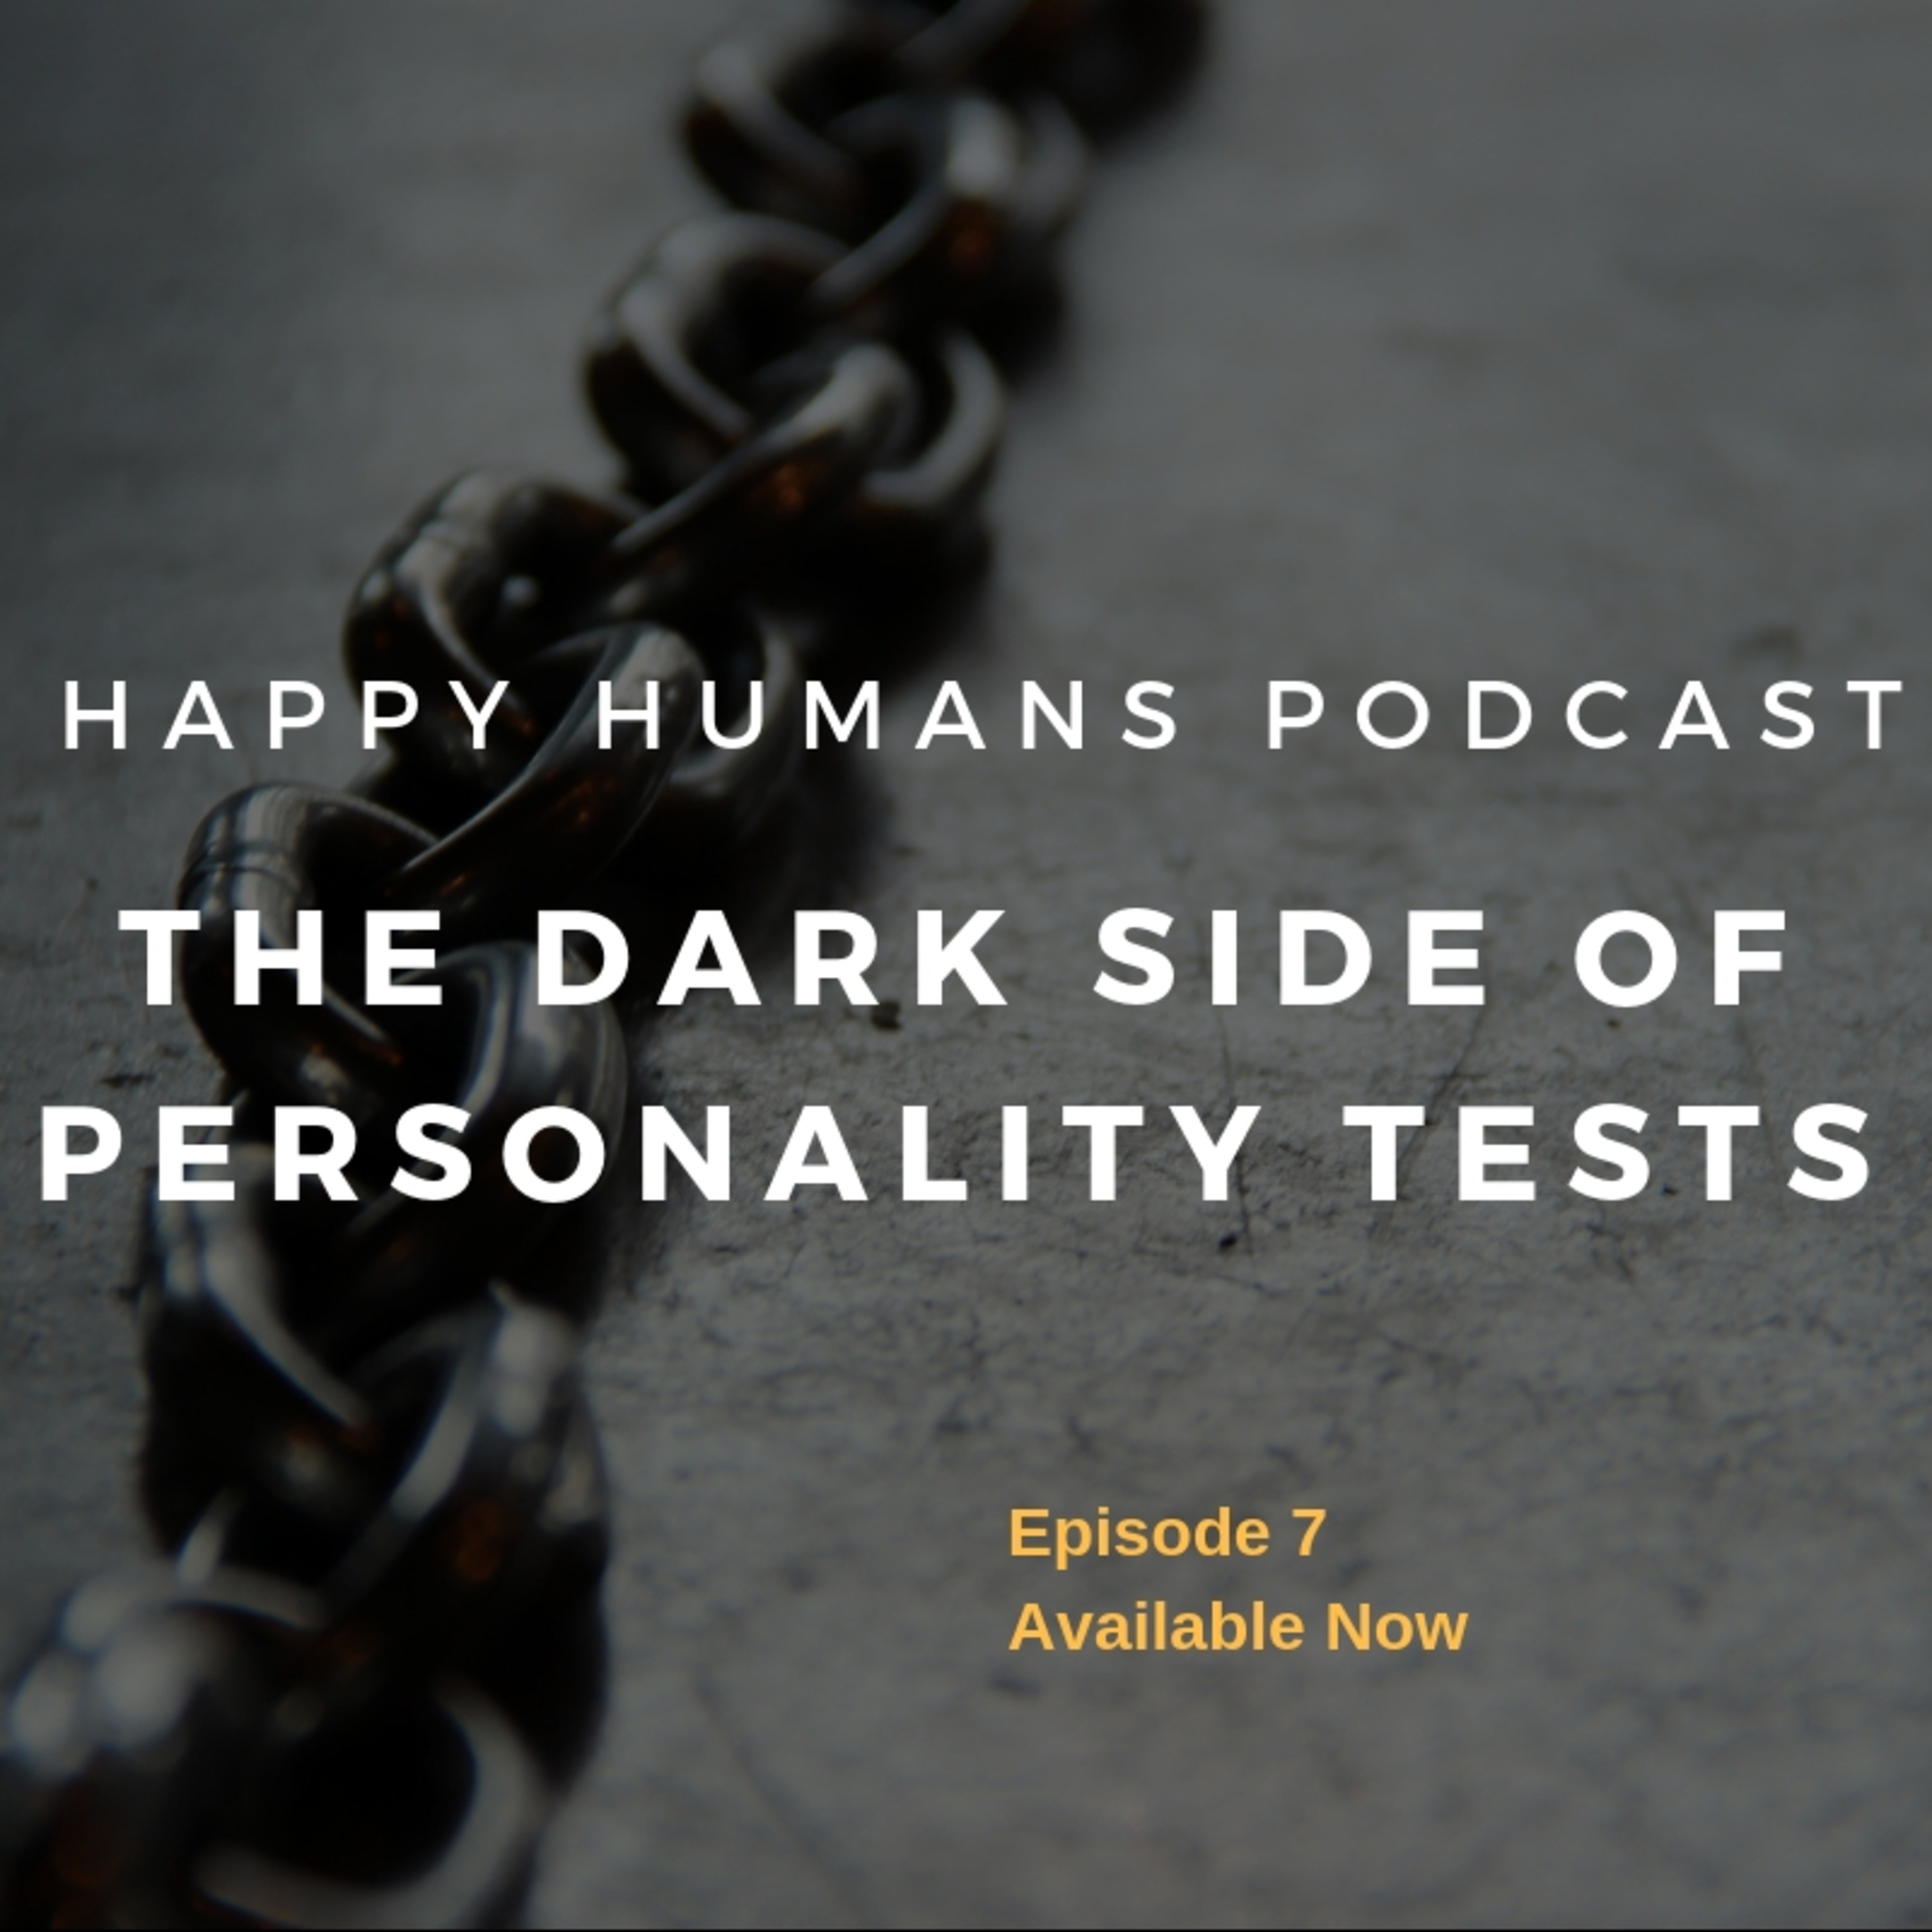 Episode 7 - The Dark Side of Personality Tests